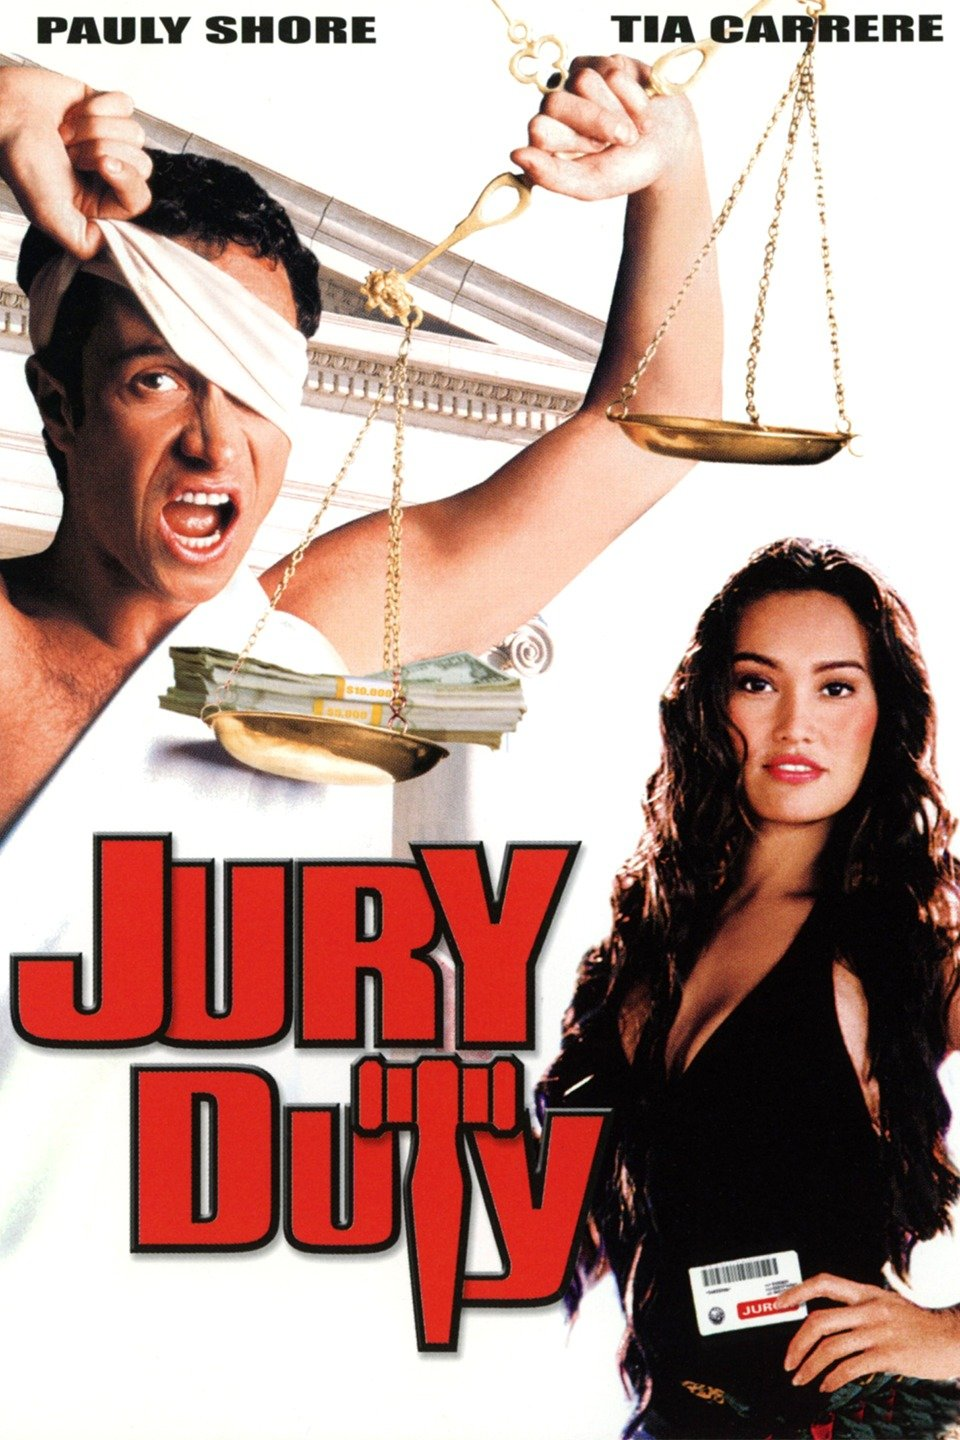 Pauly Shore From Jury Duty At Delirious Comedy Club Vegas